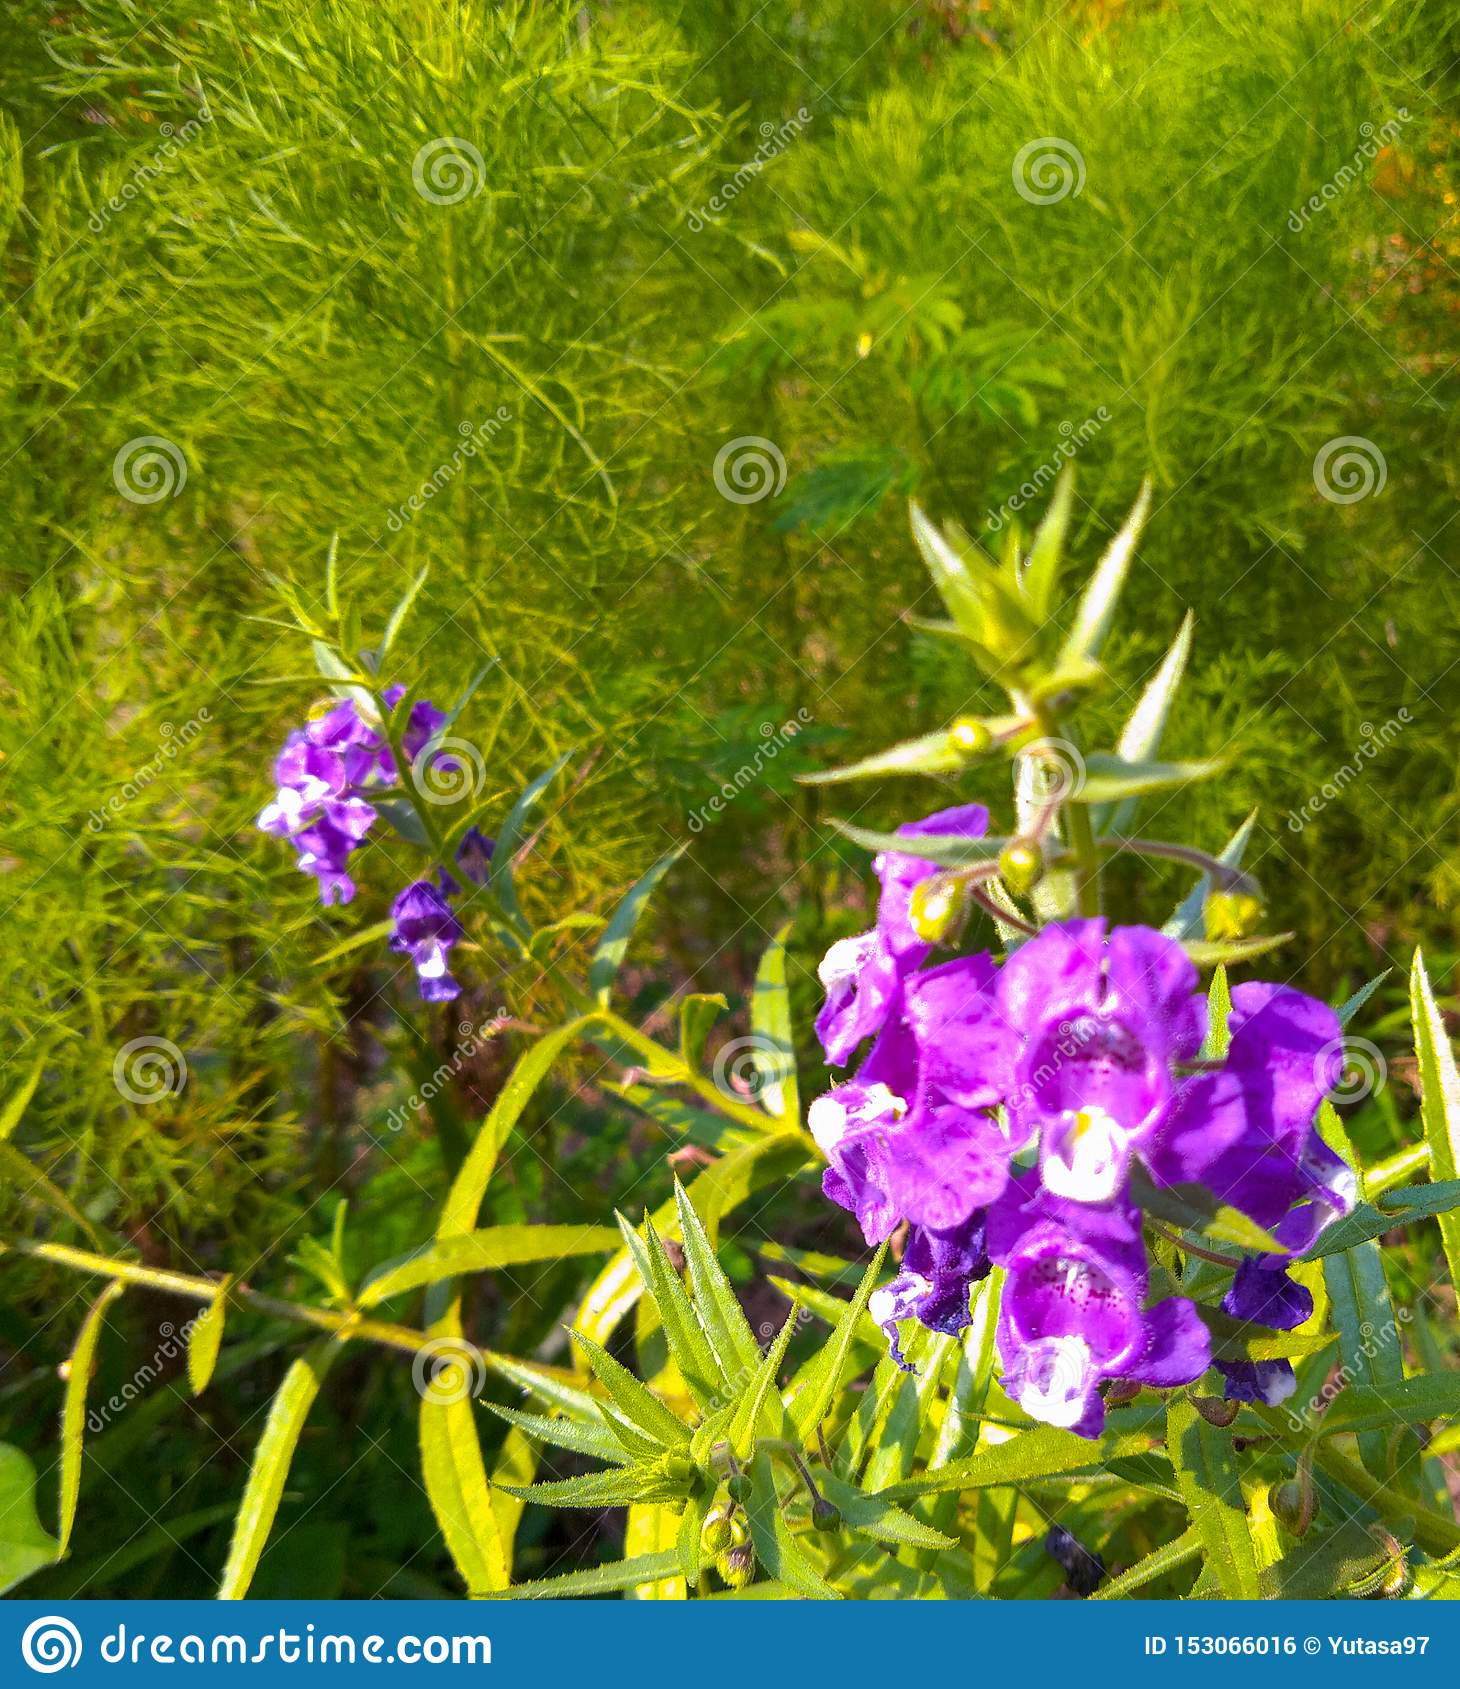 Beautiful flower with purple petals and a little spread white color in the middle